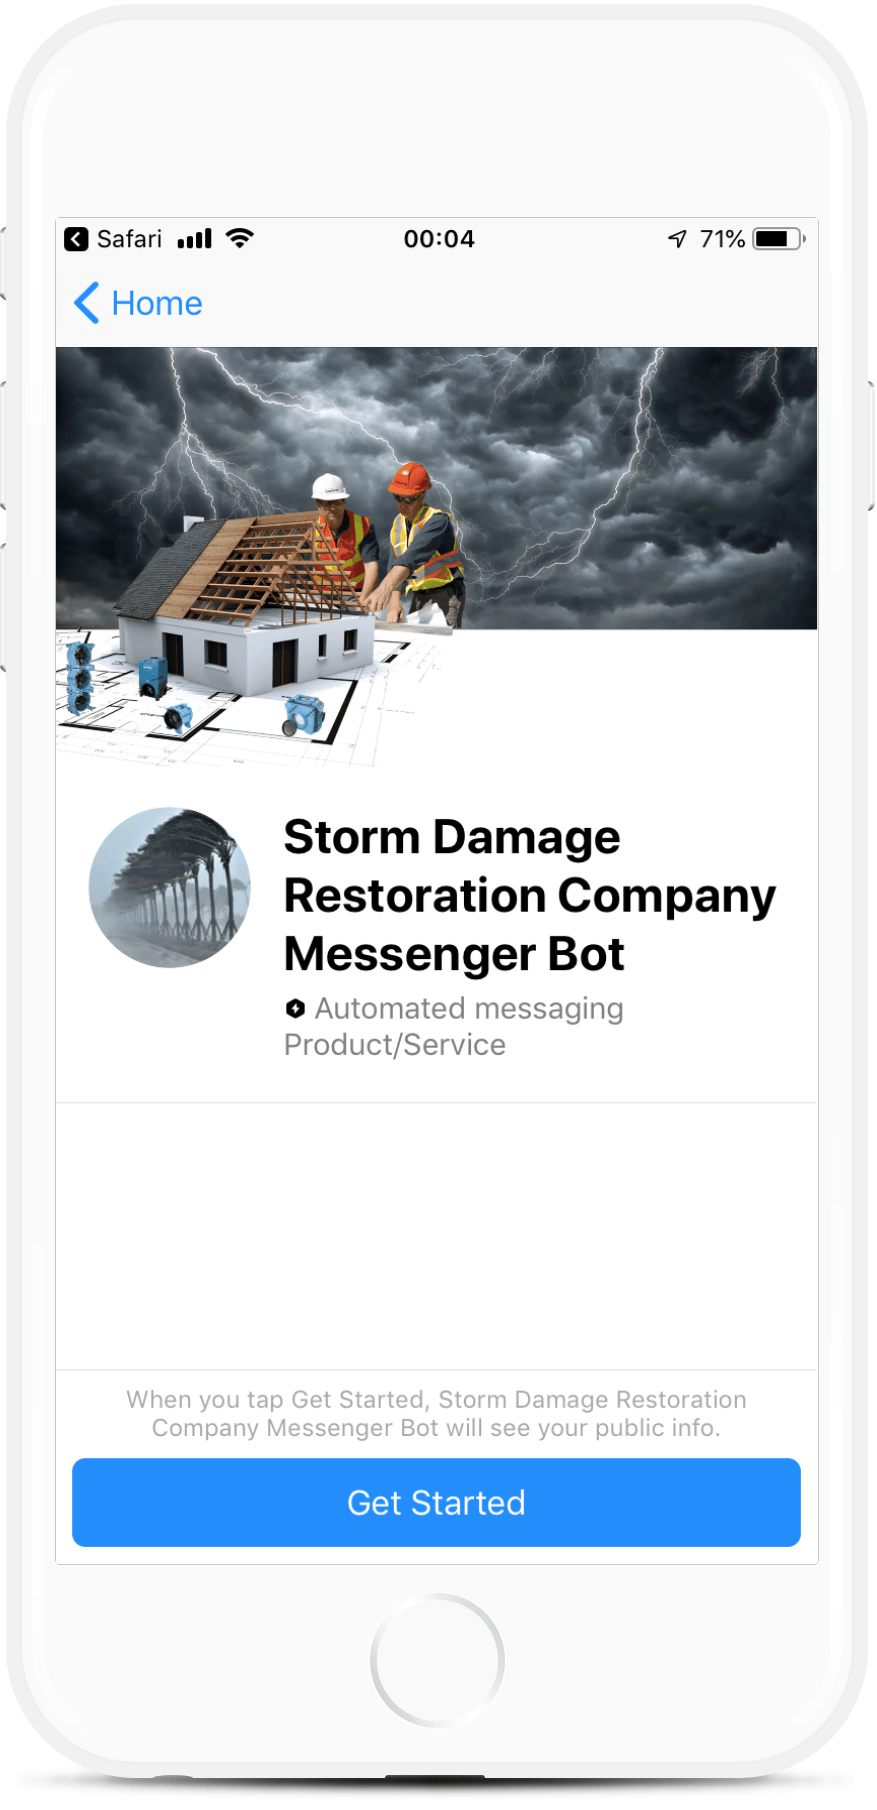 Damage Restoration Company Messenger Bot